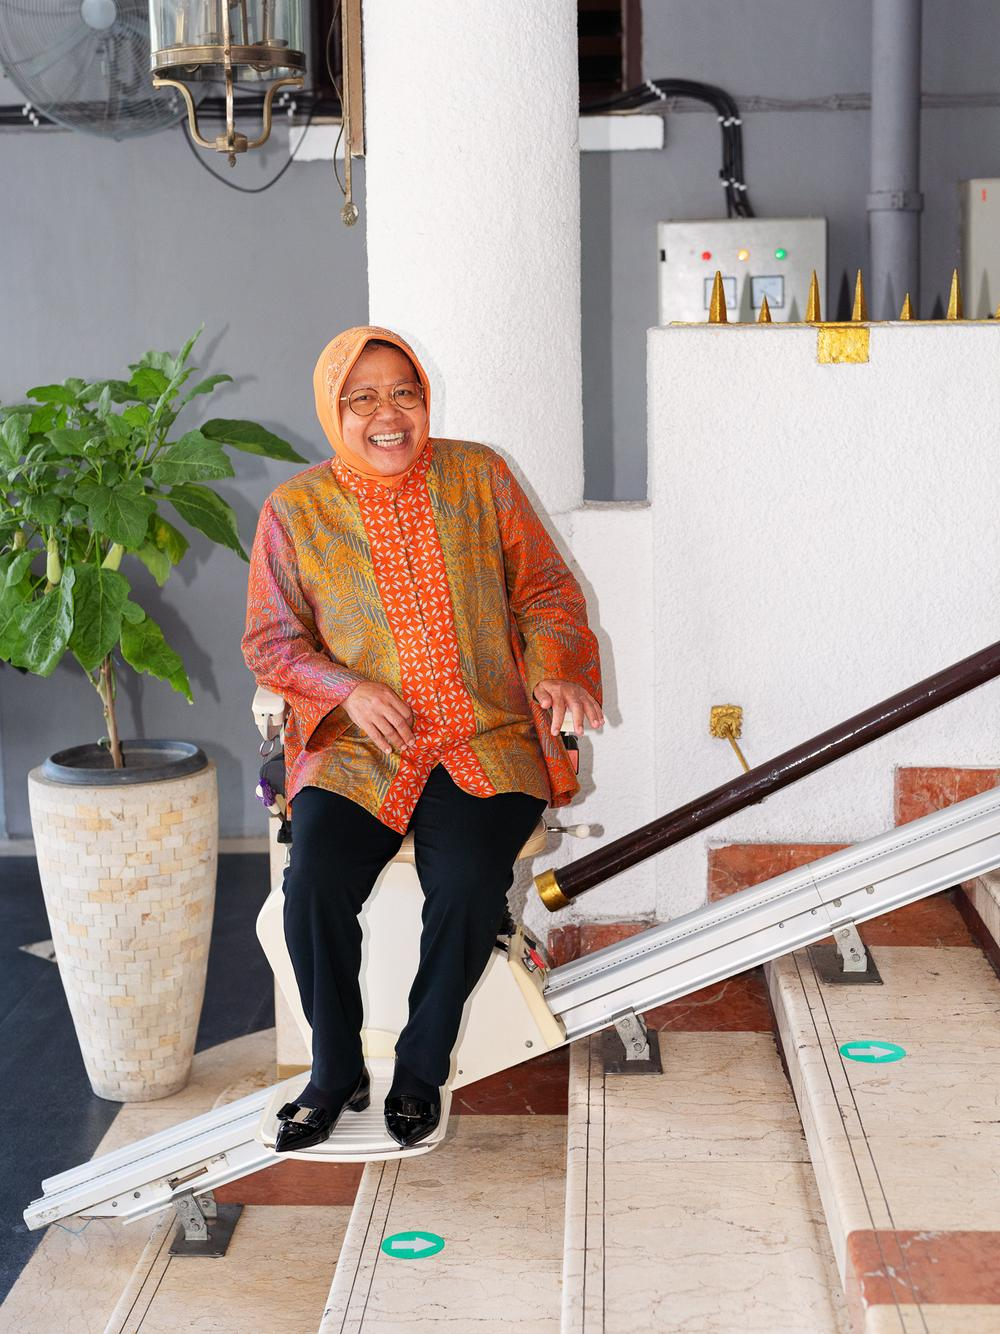 mayor-of-surabaya-monocle-04_09844-photo-by-all-is-amazing.jpg